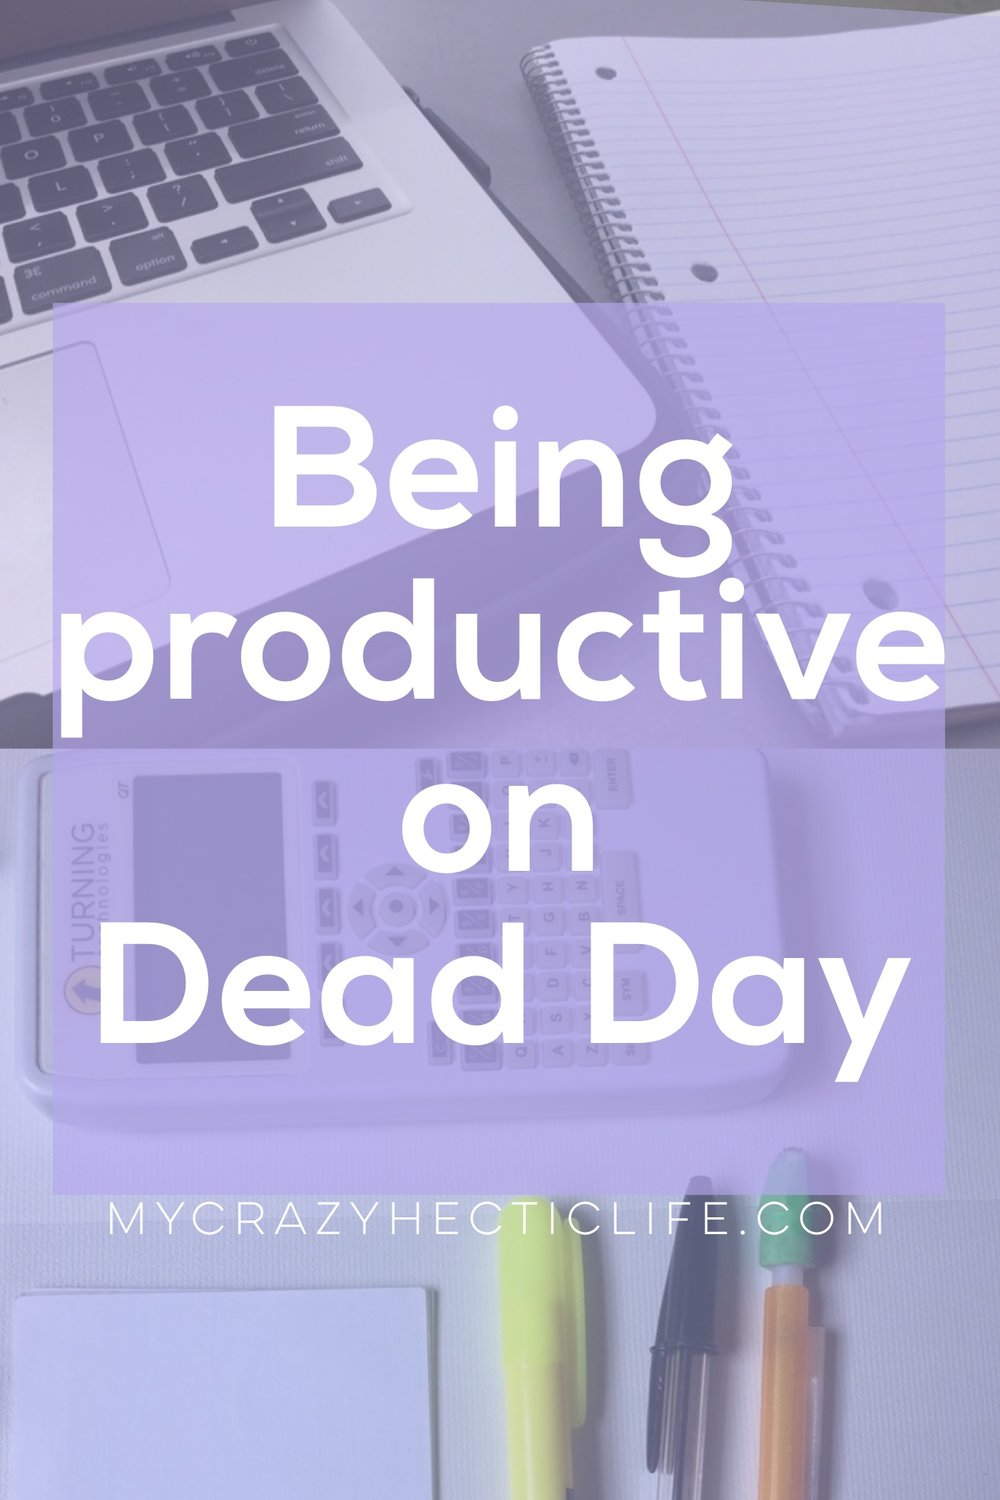 Get your stuff done on dead day!